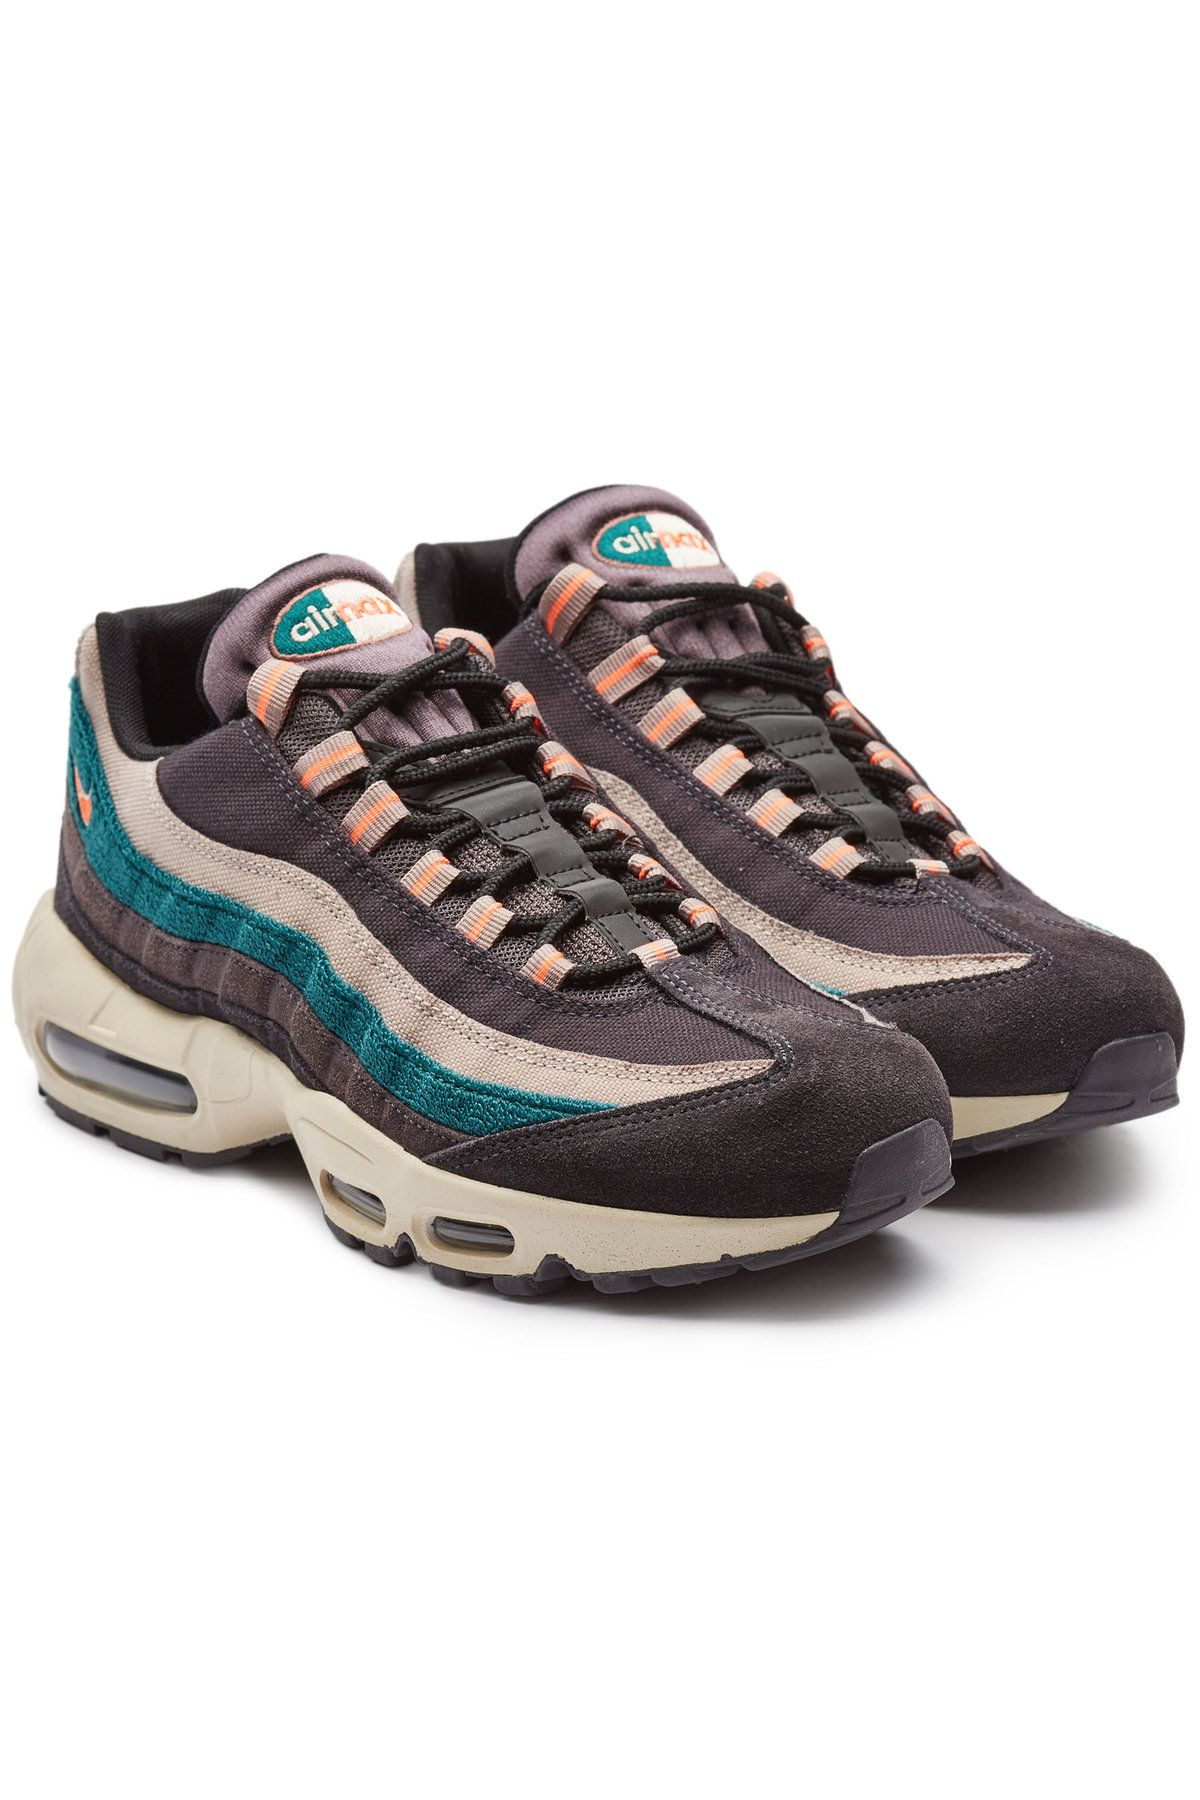 NIKE AIR MAX 95 PREMIUM SUEDE LEATHER SNEAKERS. #nike #shoes